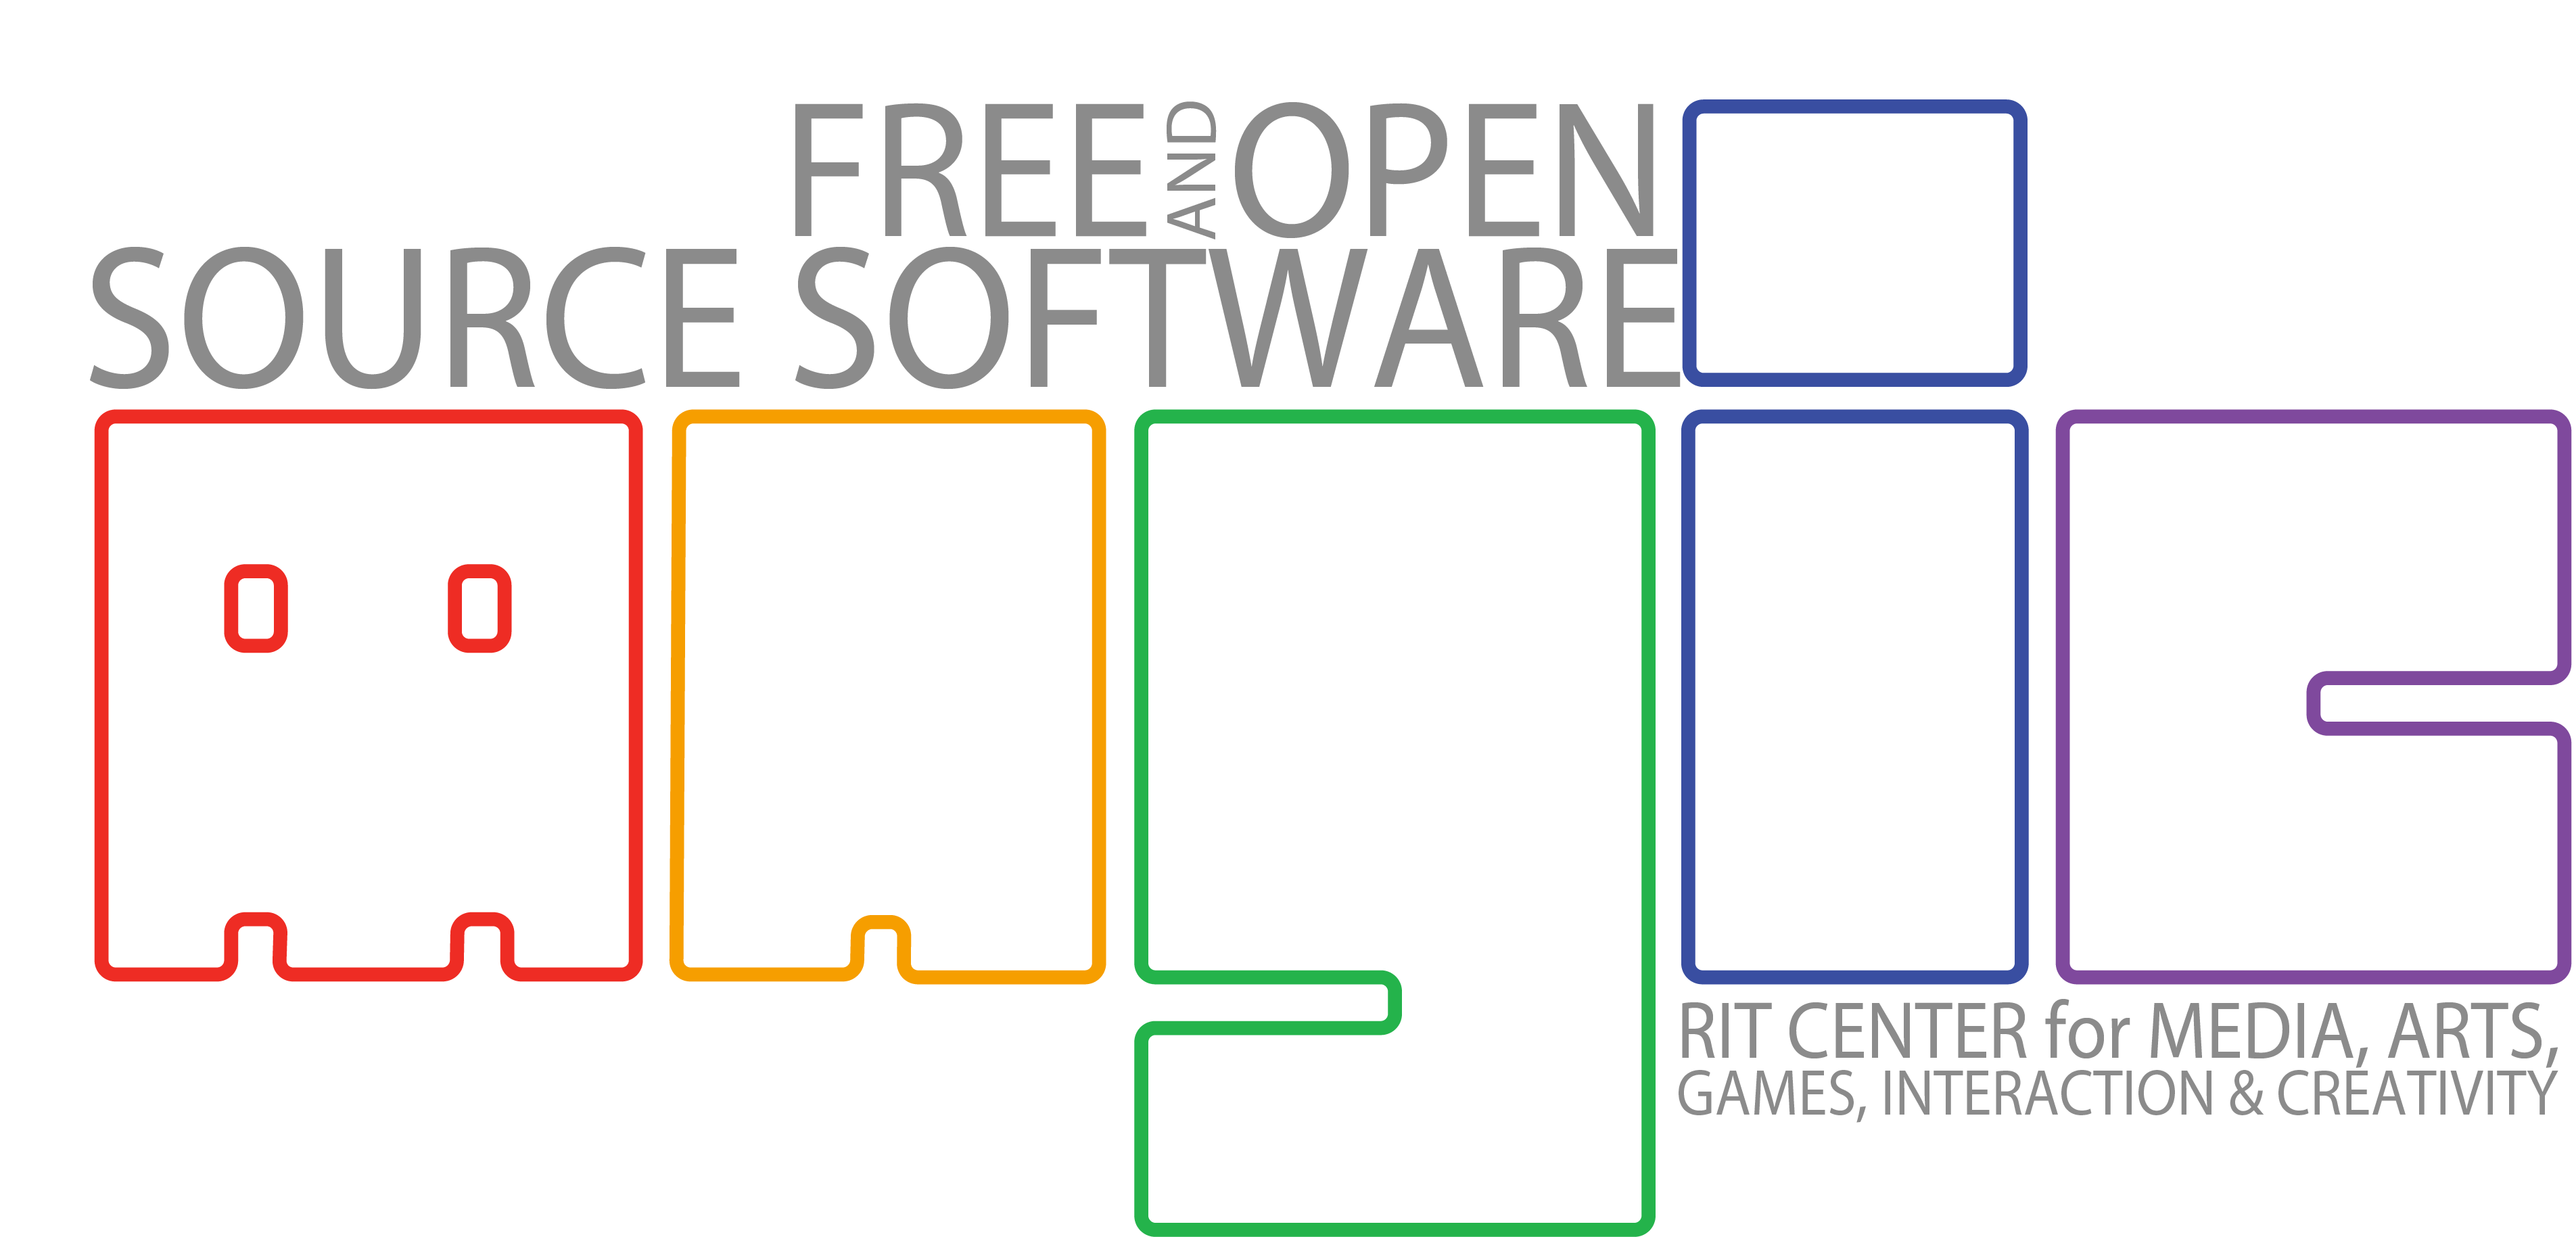 Free and Open Source Software @ MAGIC